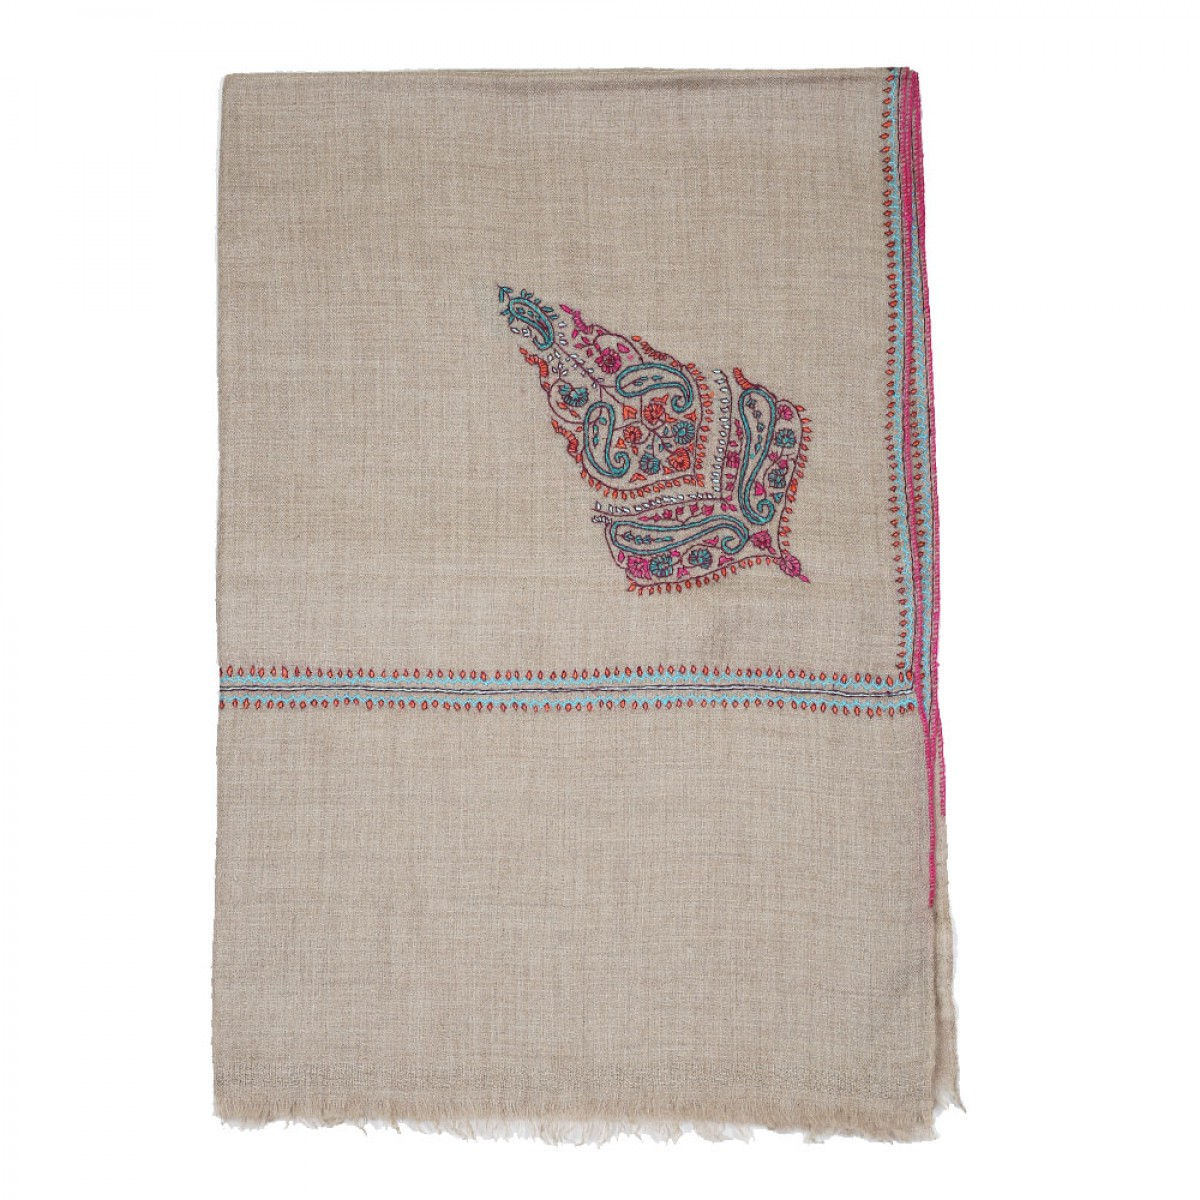 Embroidery Handloom Pashmina Scarf - Natural